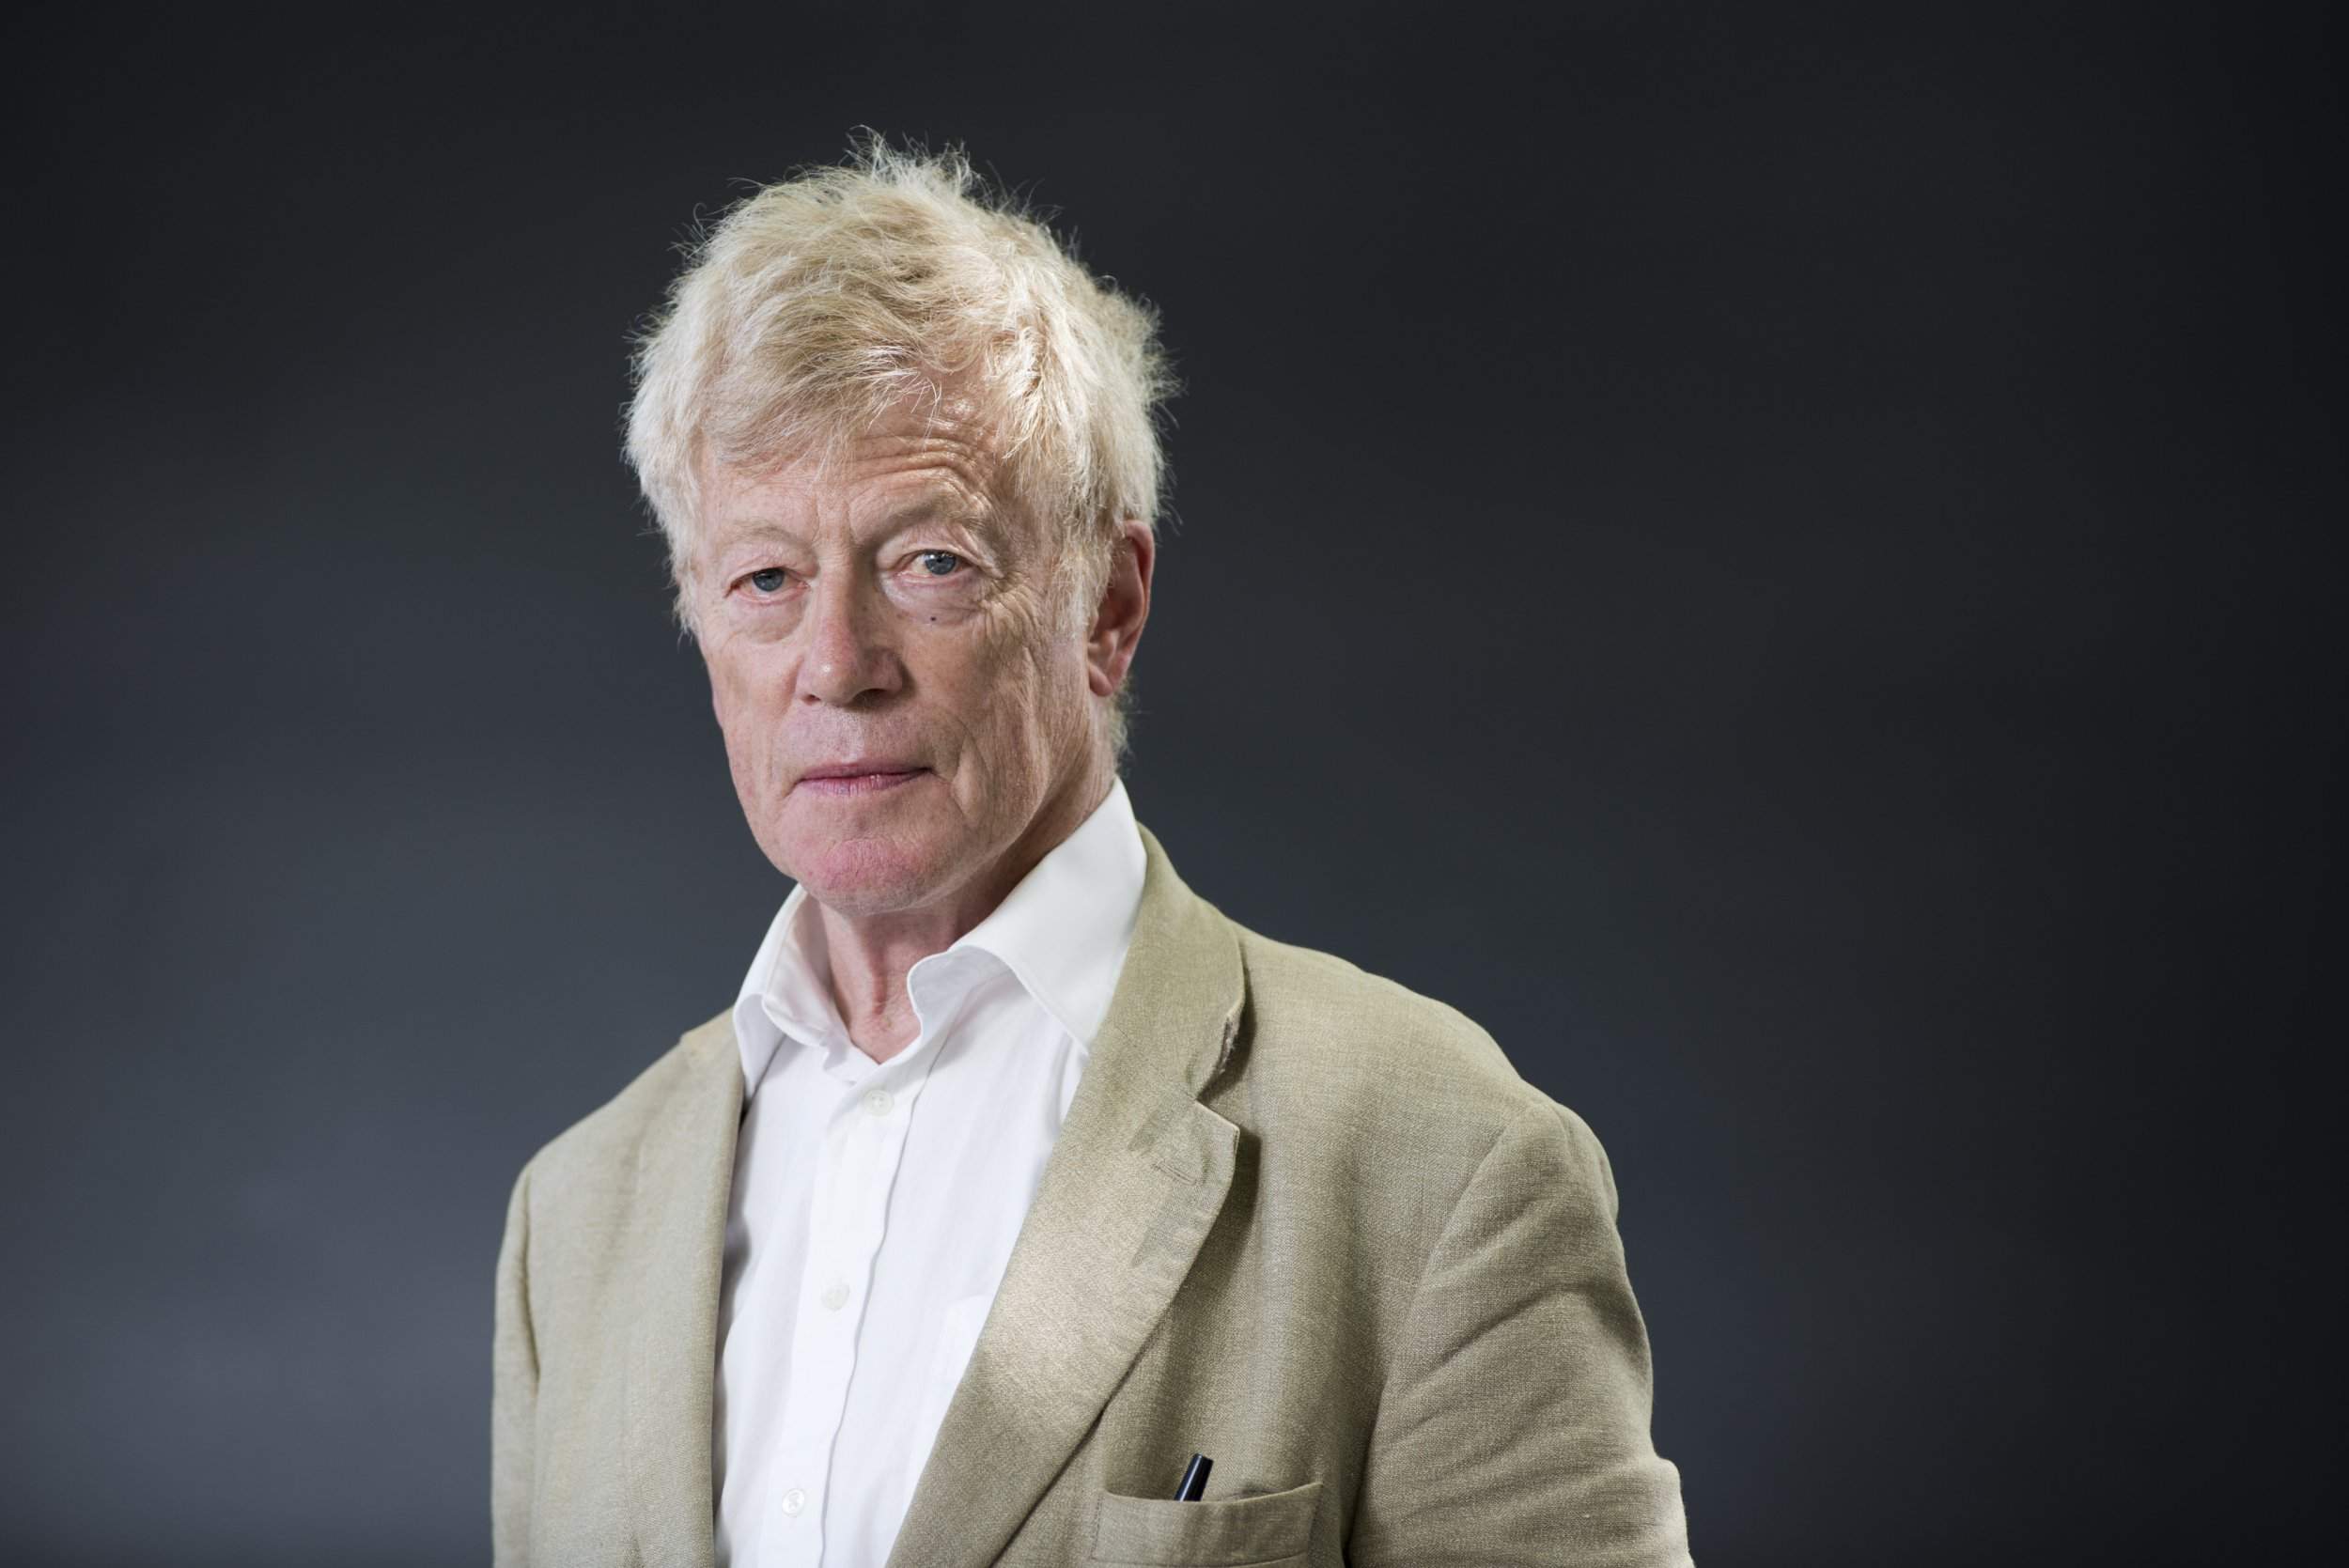 Sir Roger Scruton sacked as Government adviser after using 'language of white supremacist'